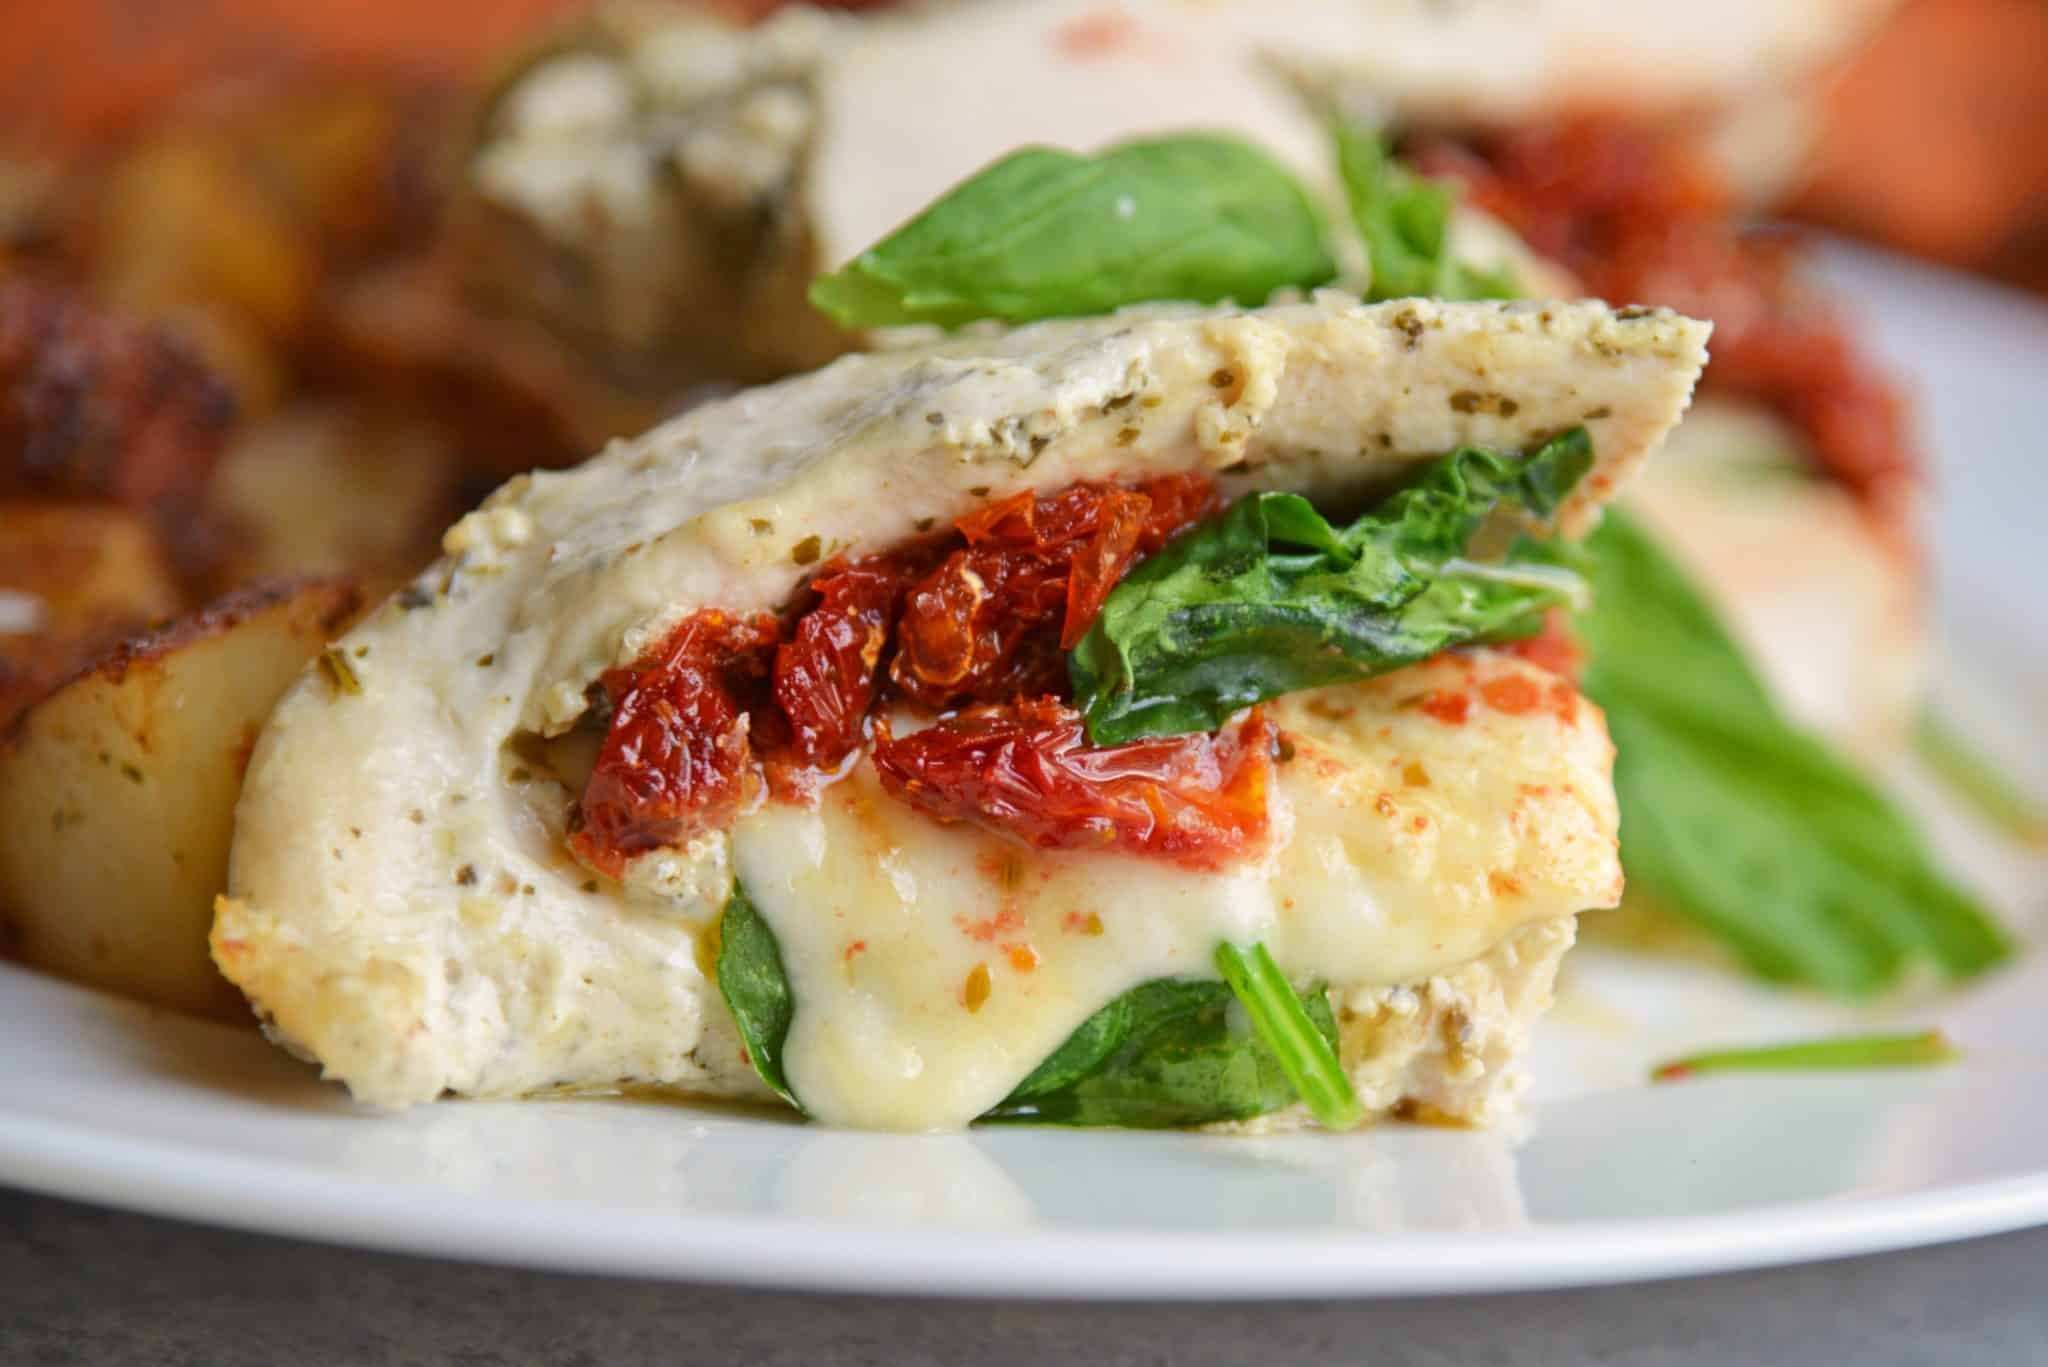 Pesto Spinach Stuffed Chicken are chicken breasts stuffed with gooey mozzarella cheese, sun dried tomatoes and spinach. Marinated in a yogurt and basil pesto sauce, they are moist and flavorful. #stuffedchicken #spinachstuffedchicken www.savoryexperiments.com